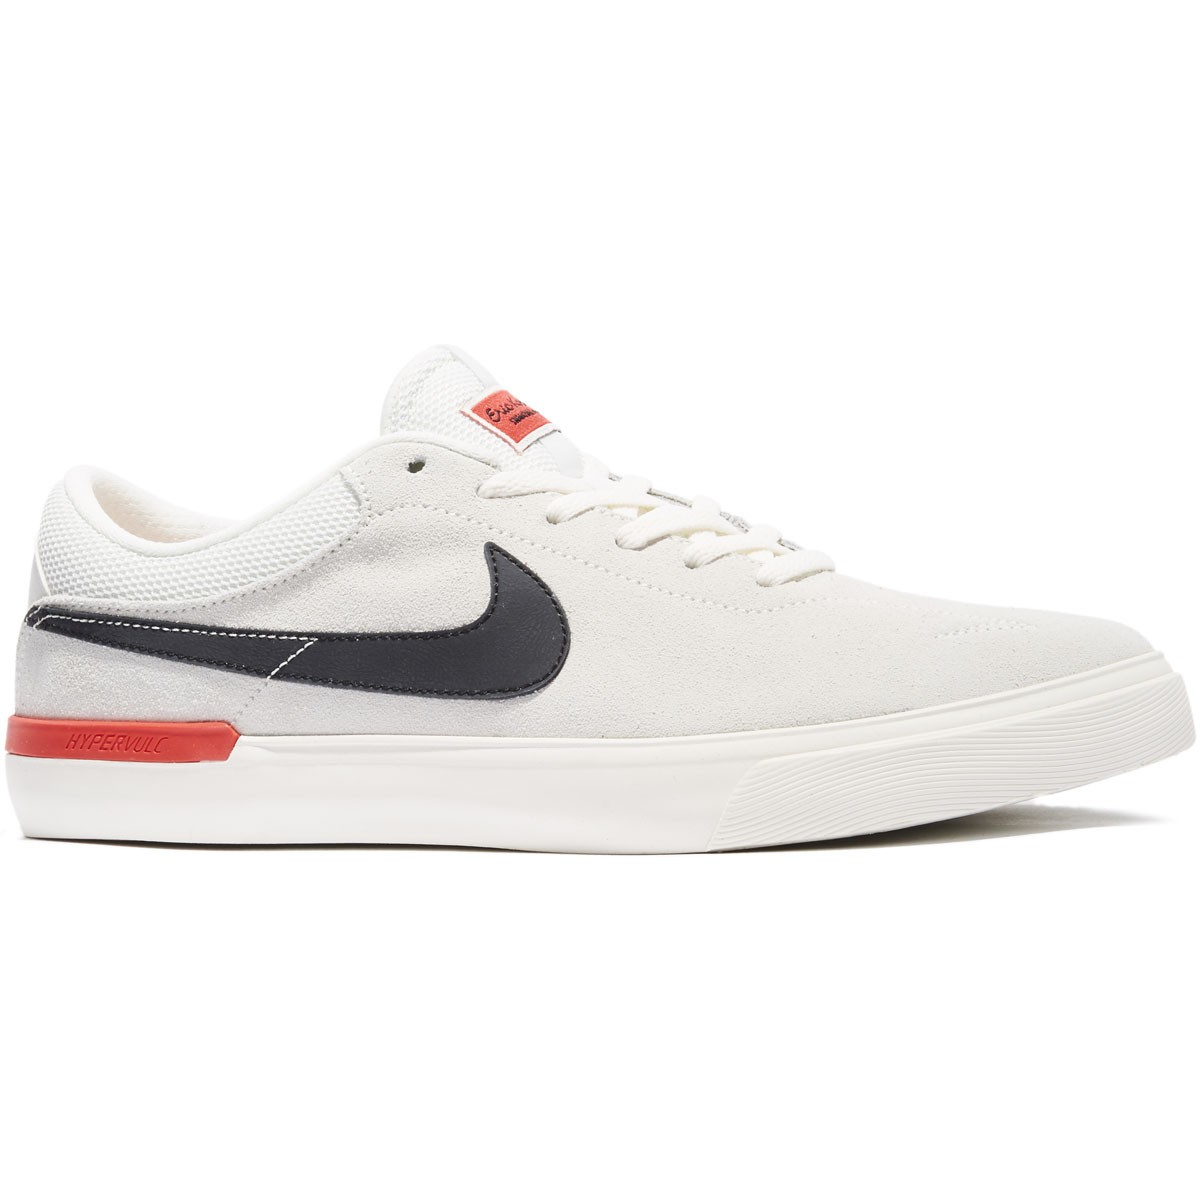 Nike SB Koston Hypervulc Shoes e9abb9989